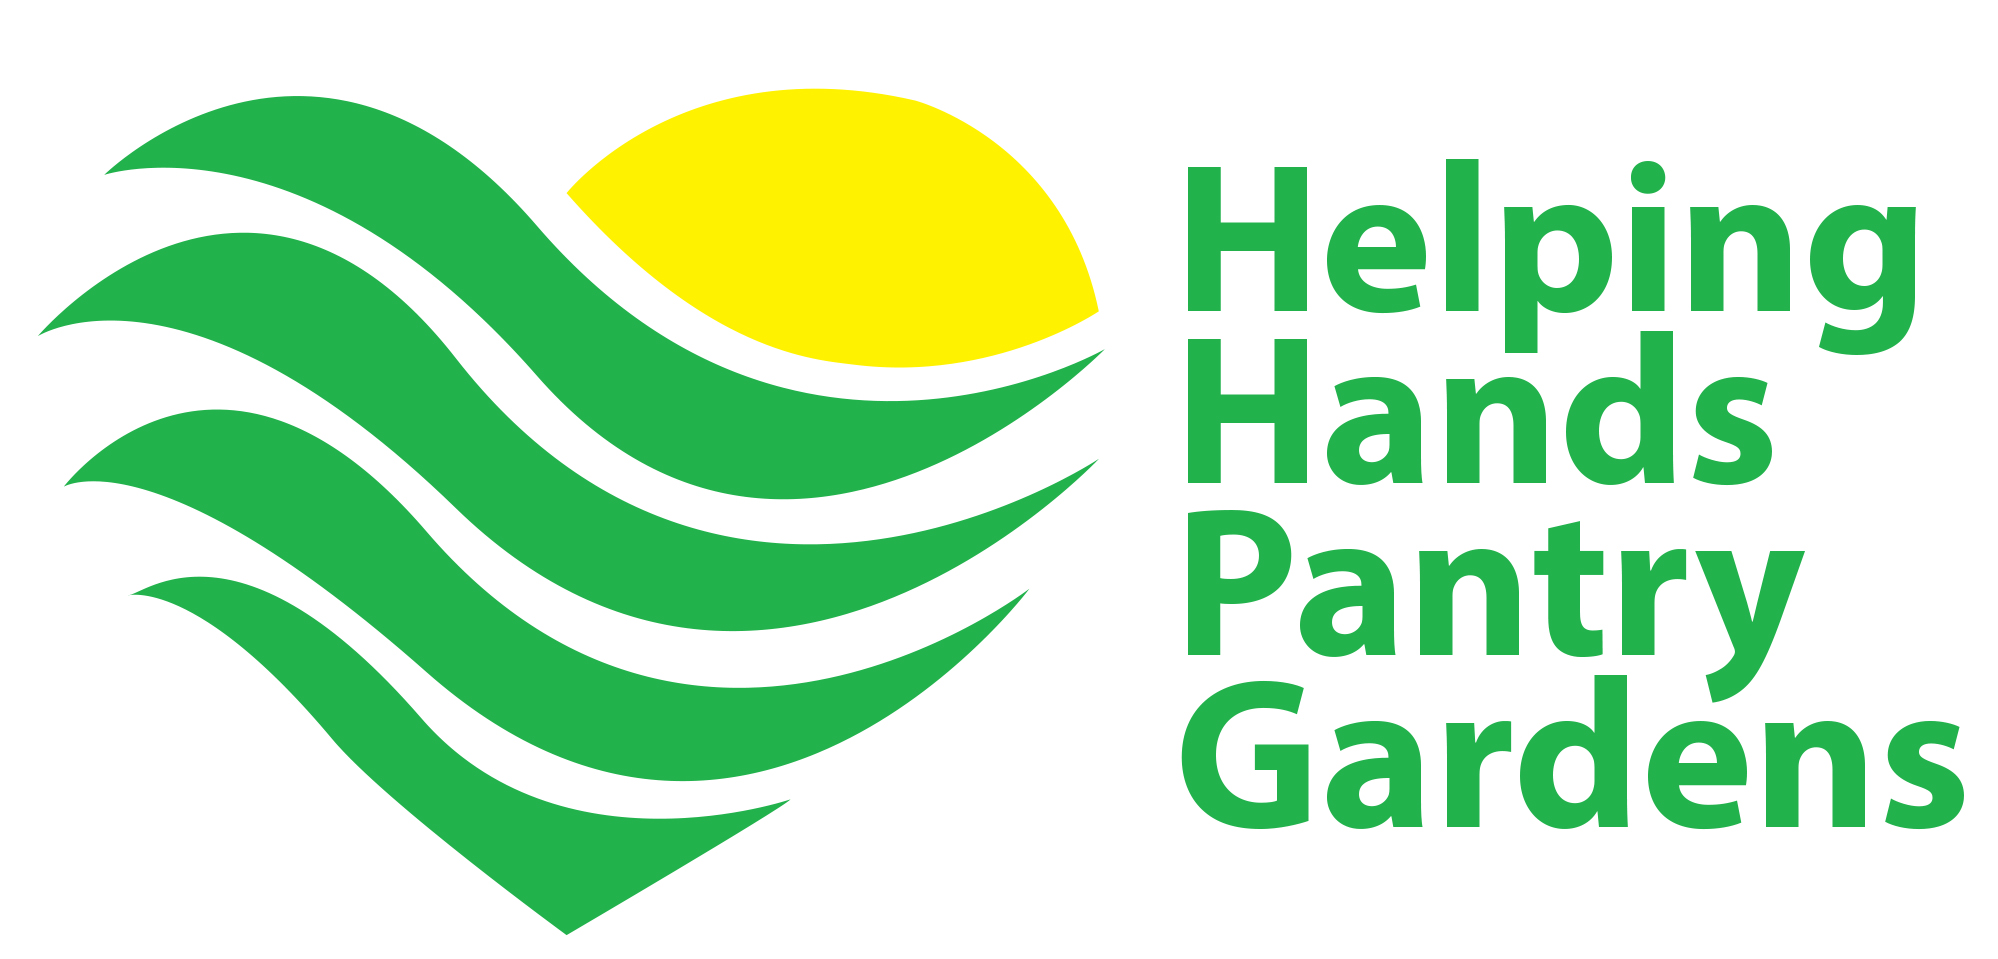 Gardens Helping Hands Pantry